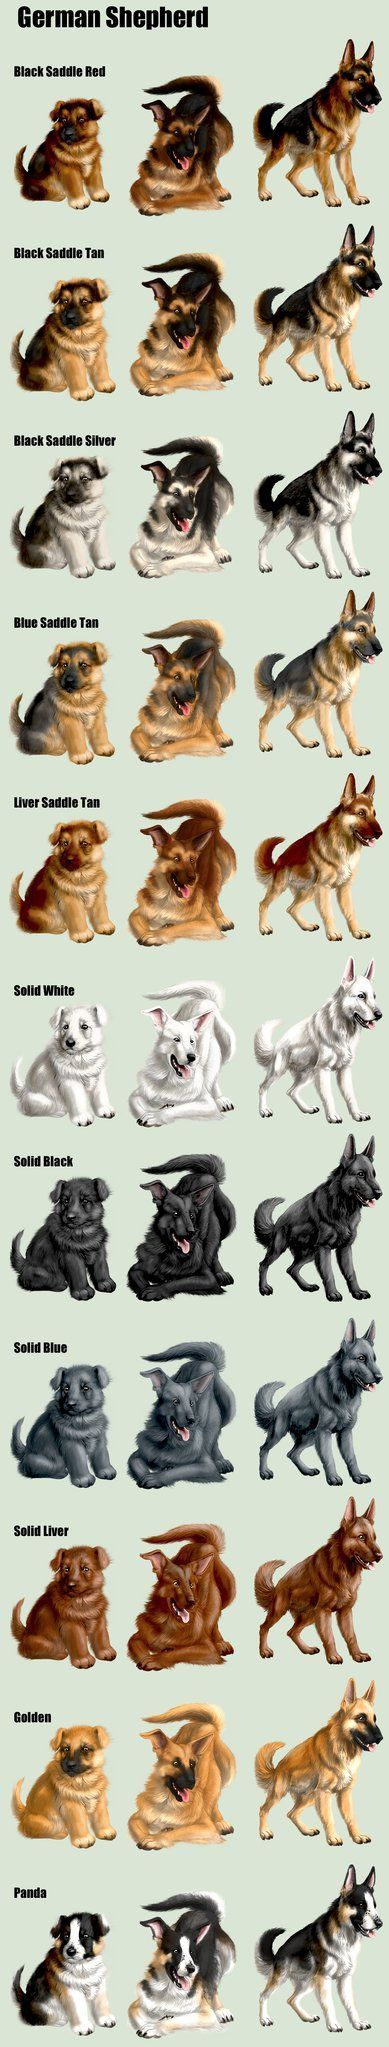 Distintas coloraciones del Pastor Alemán  #perros #pastoraleman #doglovers Everything you want to know about GSDs. Health and beauty recommendations. Funny videos and more